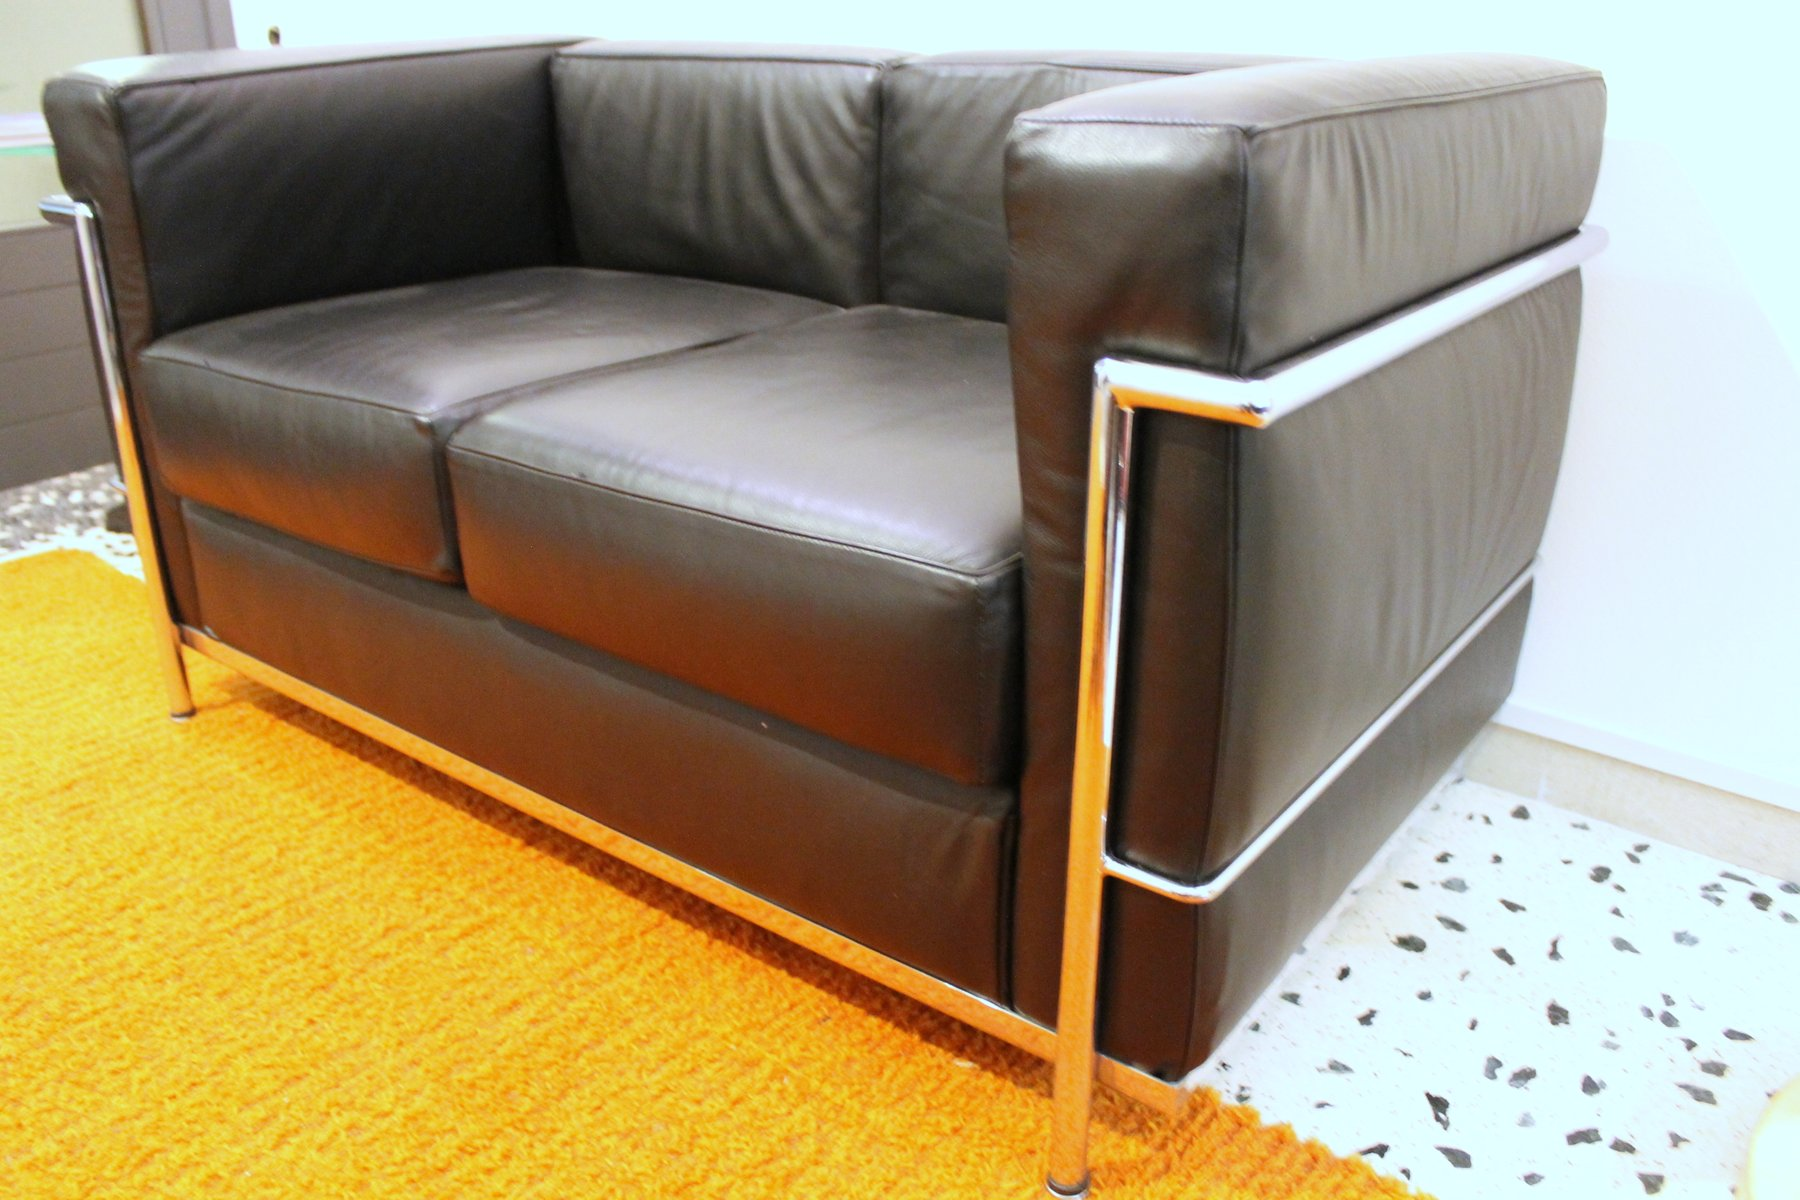 Lc2 sofa by le corbusier for alivar 1989 for sale at pamono for Le corbusier lc2 nachbau